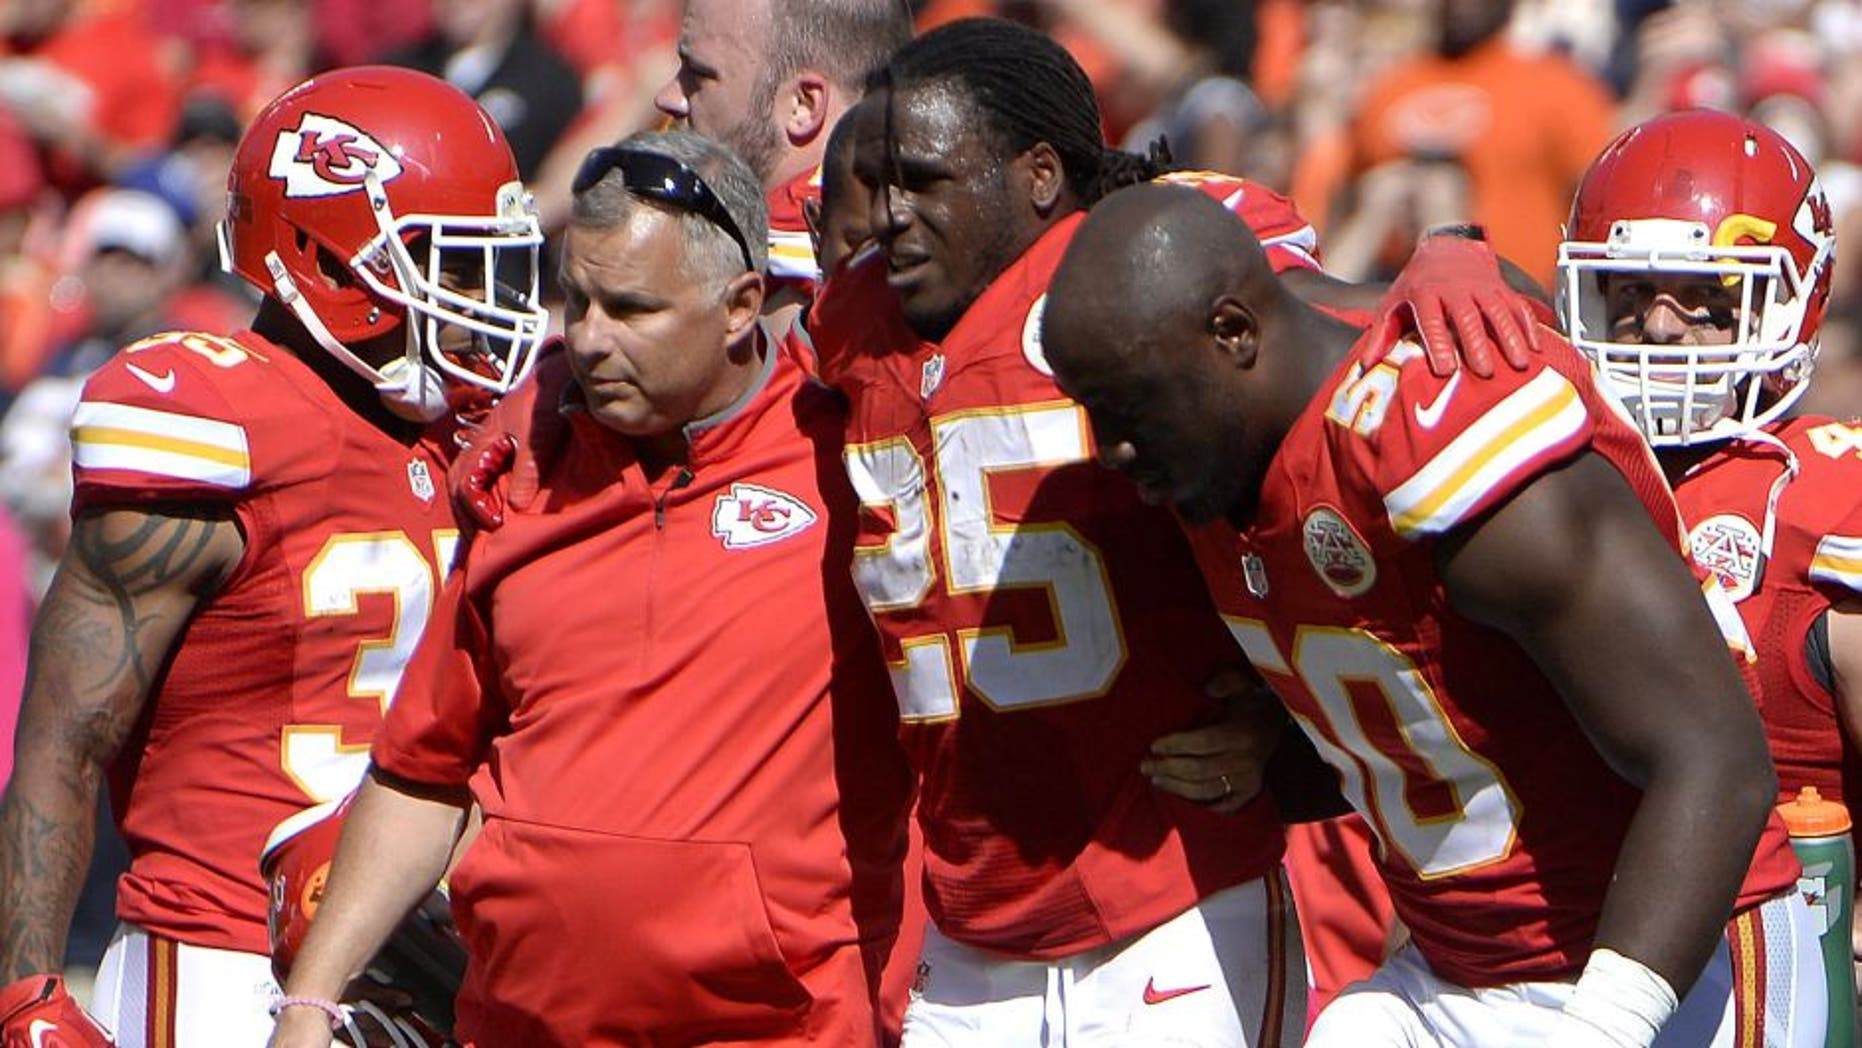 Oct 11, 2015; Kansas City, MO, USA; Kansas City Chiefs running back Jamaal Charles (25) is helped off the field against the Chicago Bears in the second half at Arrowhead Stadium. Chicago won the game 18-17. Mandatory Credit: John Rieger-USA TODAY Sports